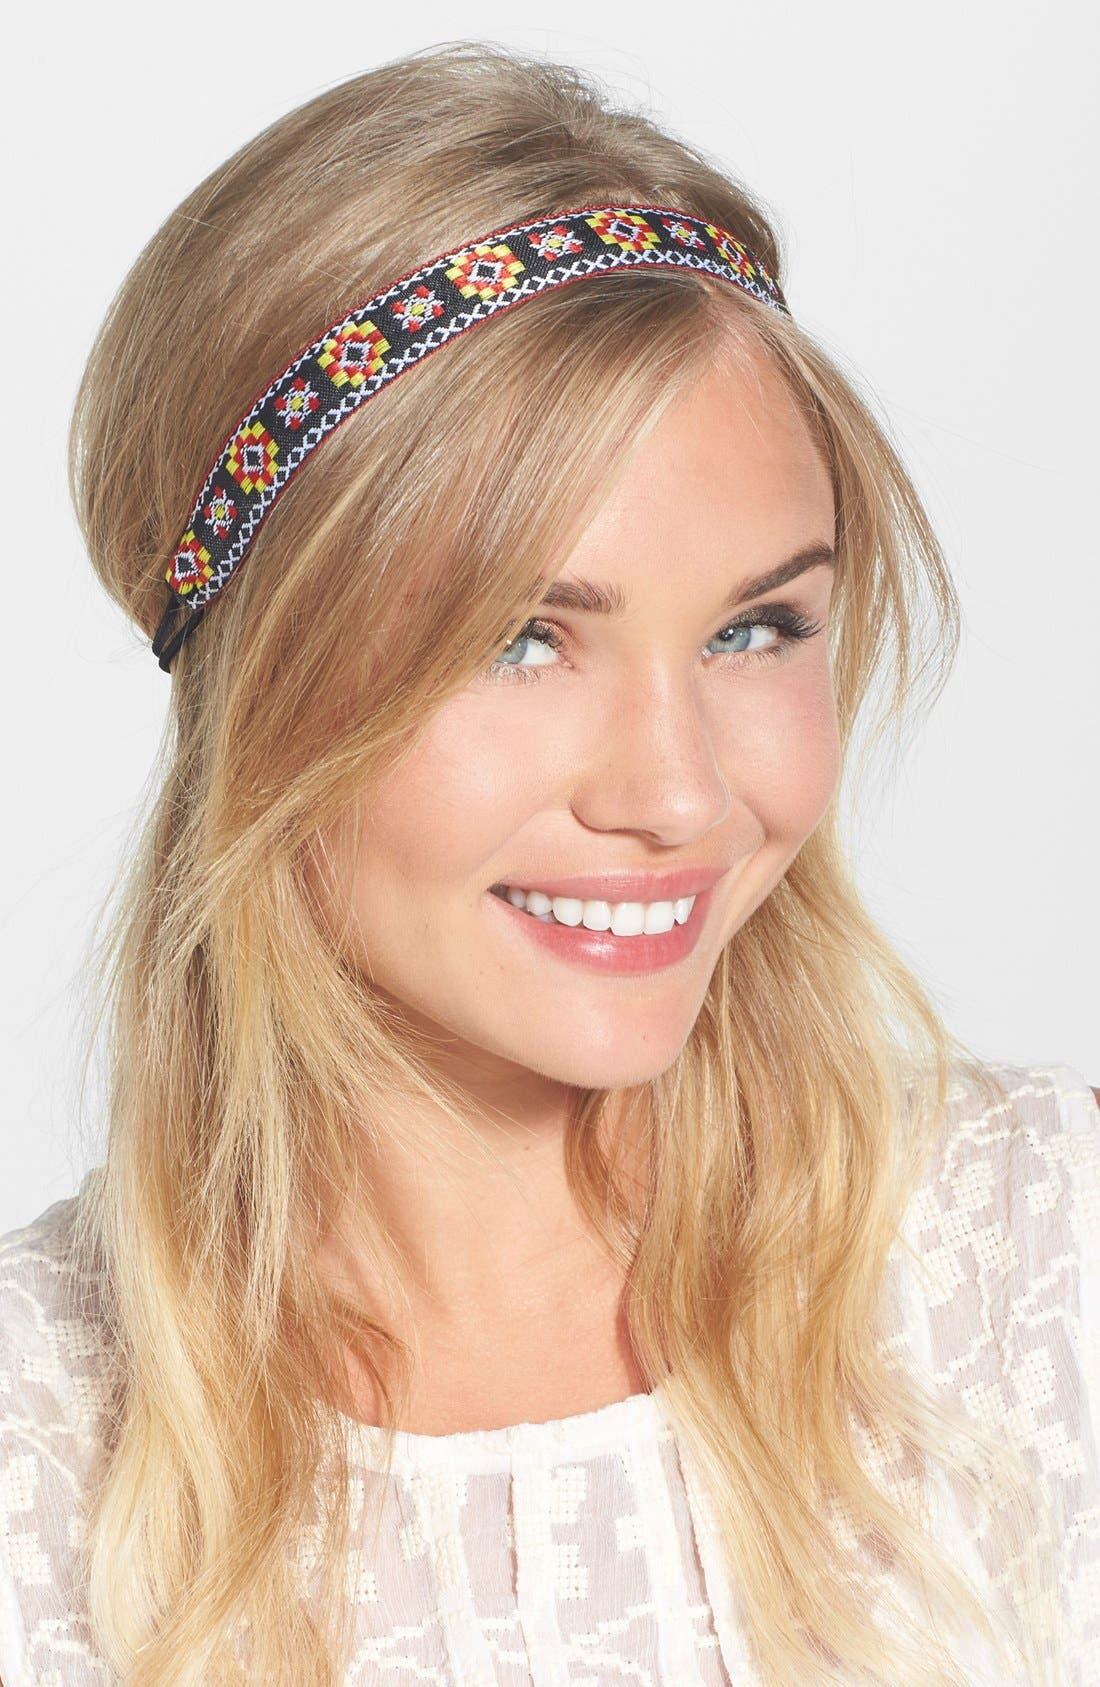 Alternate Image 1 Selected - Berry 'Dancing Floral' Head Wrap